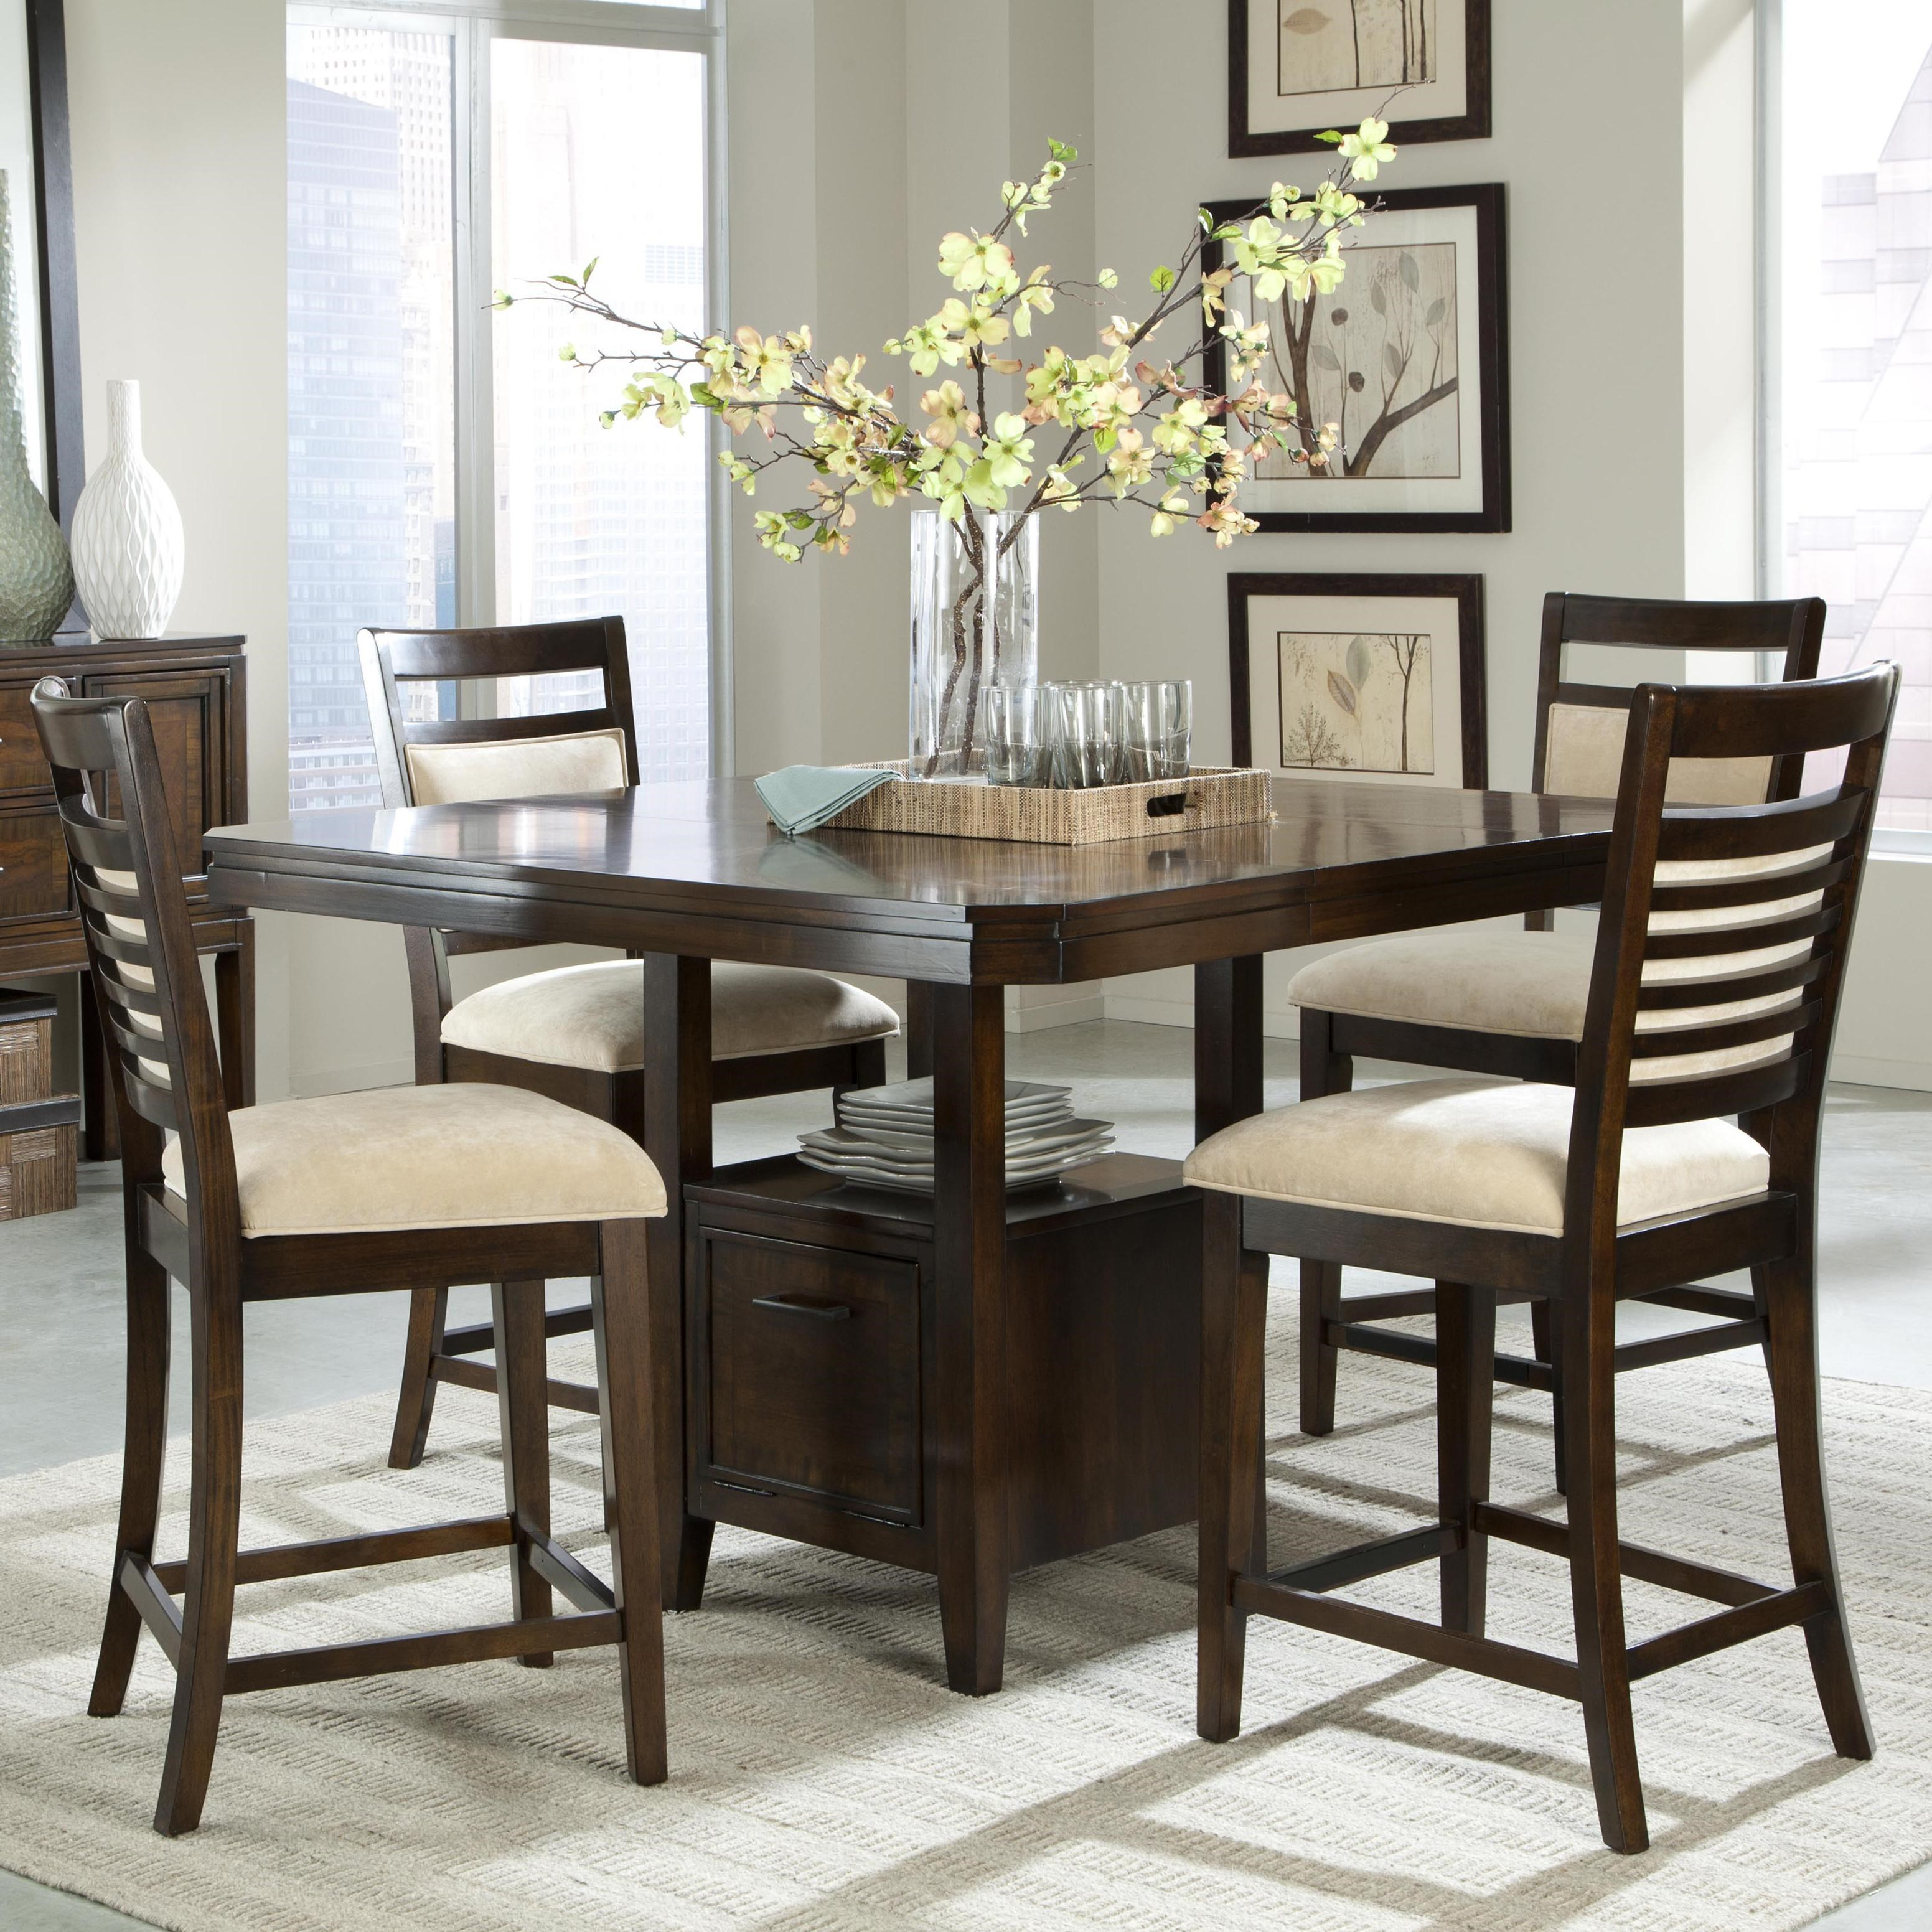 Bon Standard Furniture Avion 5 Piece Counter Height Table Set And Upholstered  Counter Height Chairs With Ladder